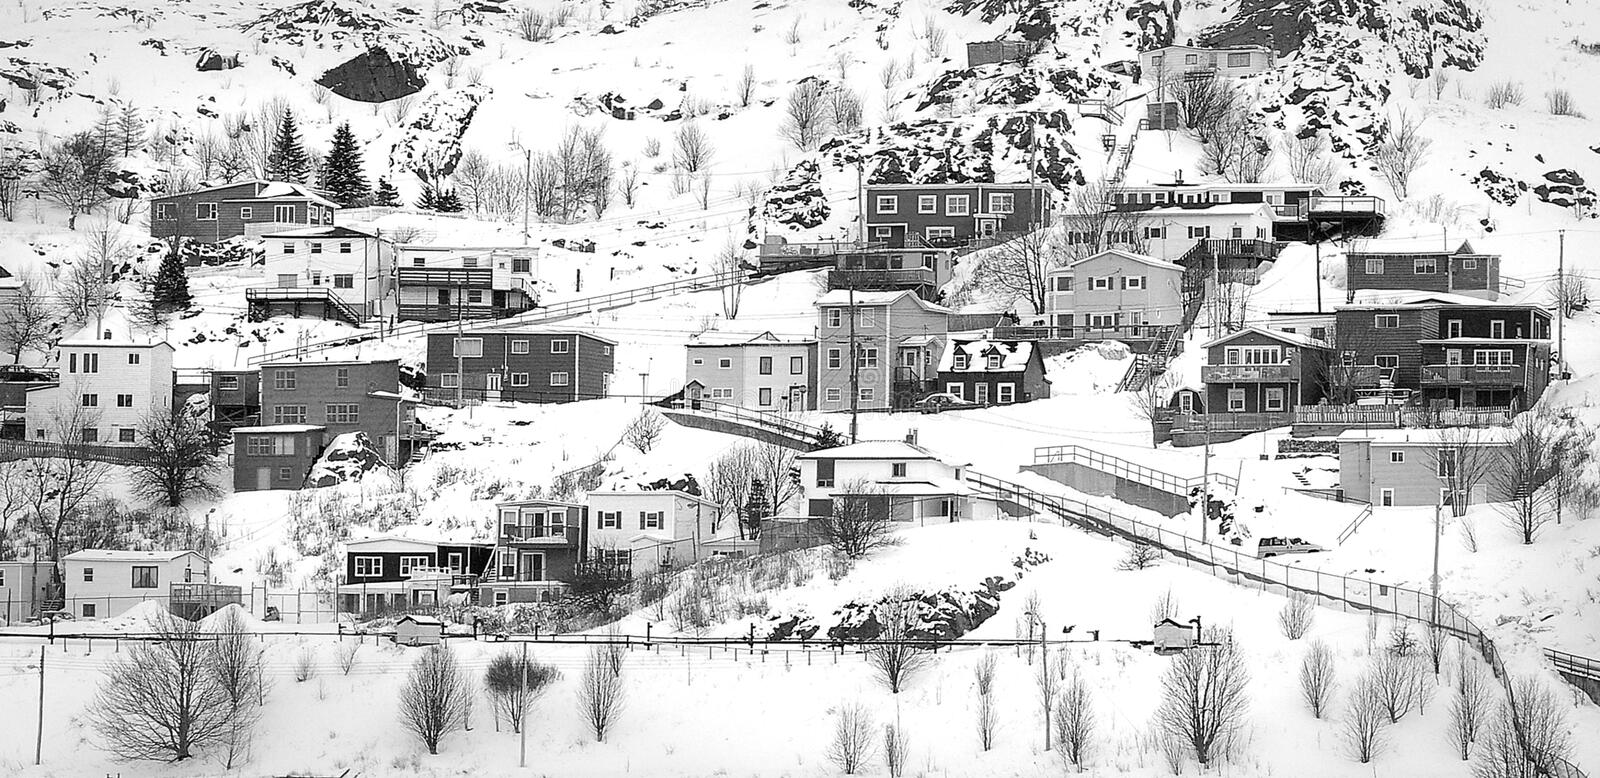 Village On Mountain Covered With Snows Free Public Domain Cc0 Image